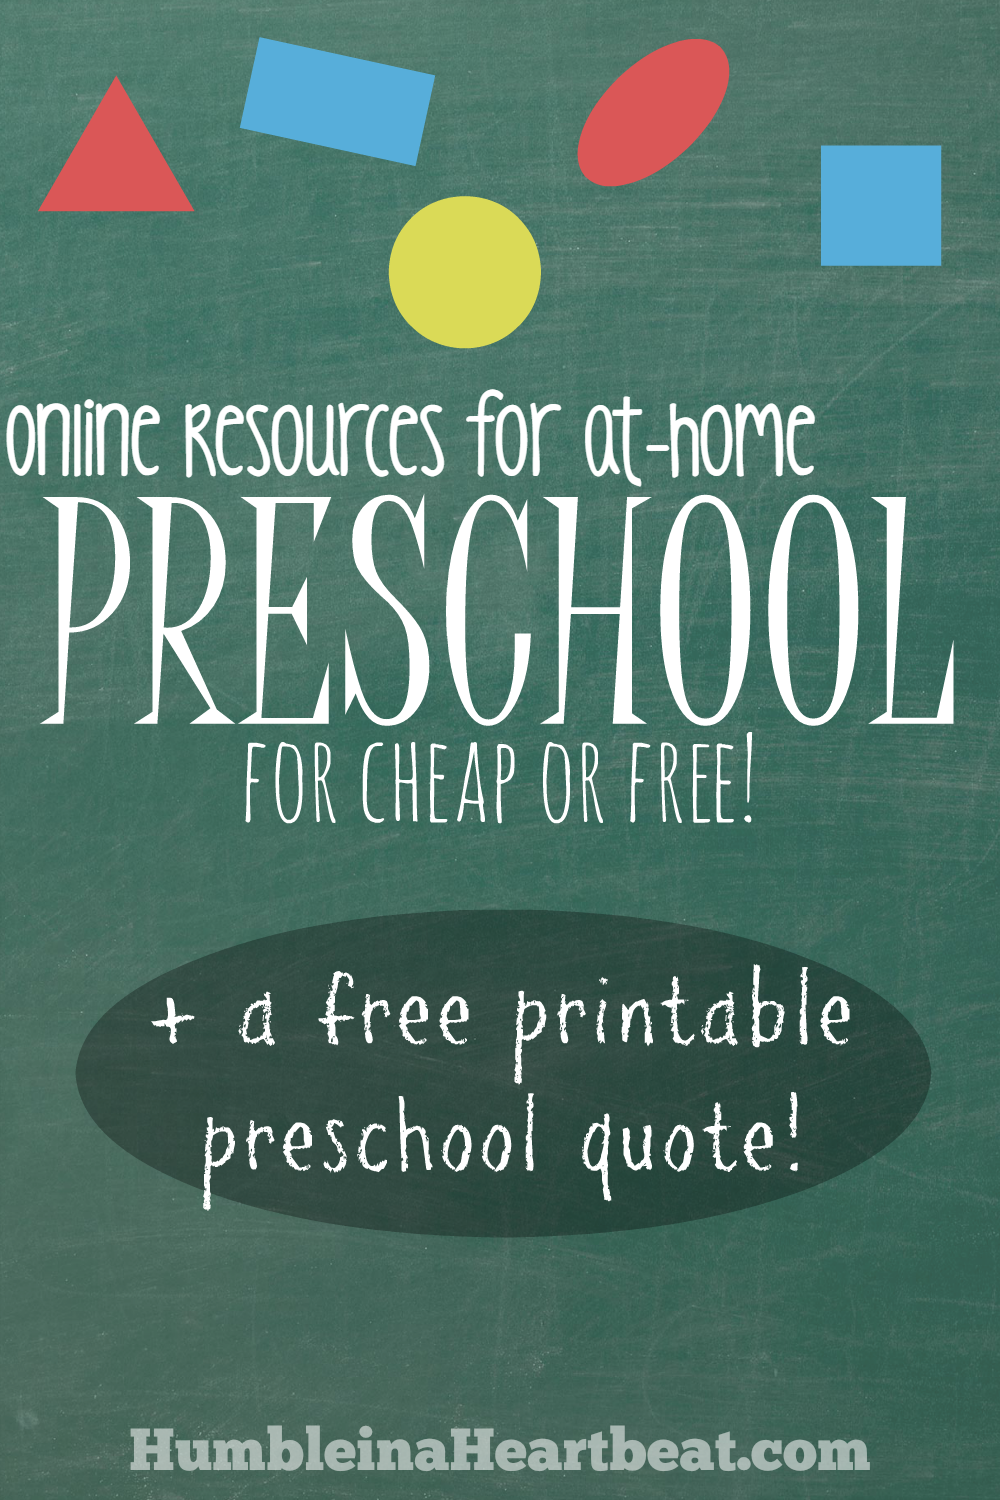 Looking for low-cost alternatives to sending your child to preschool? If you want to teach your child at home this school year, here are some fabulous online resources to get you started.